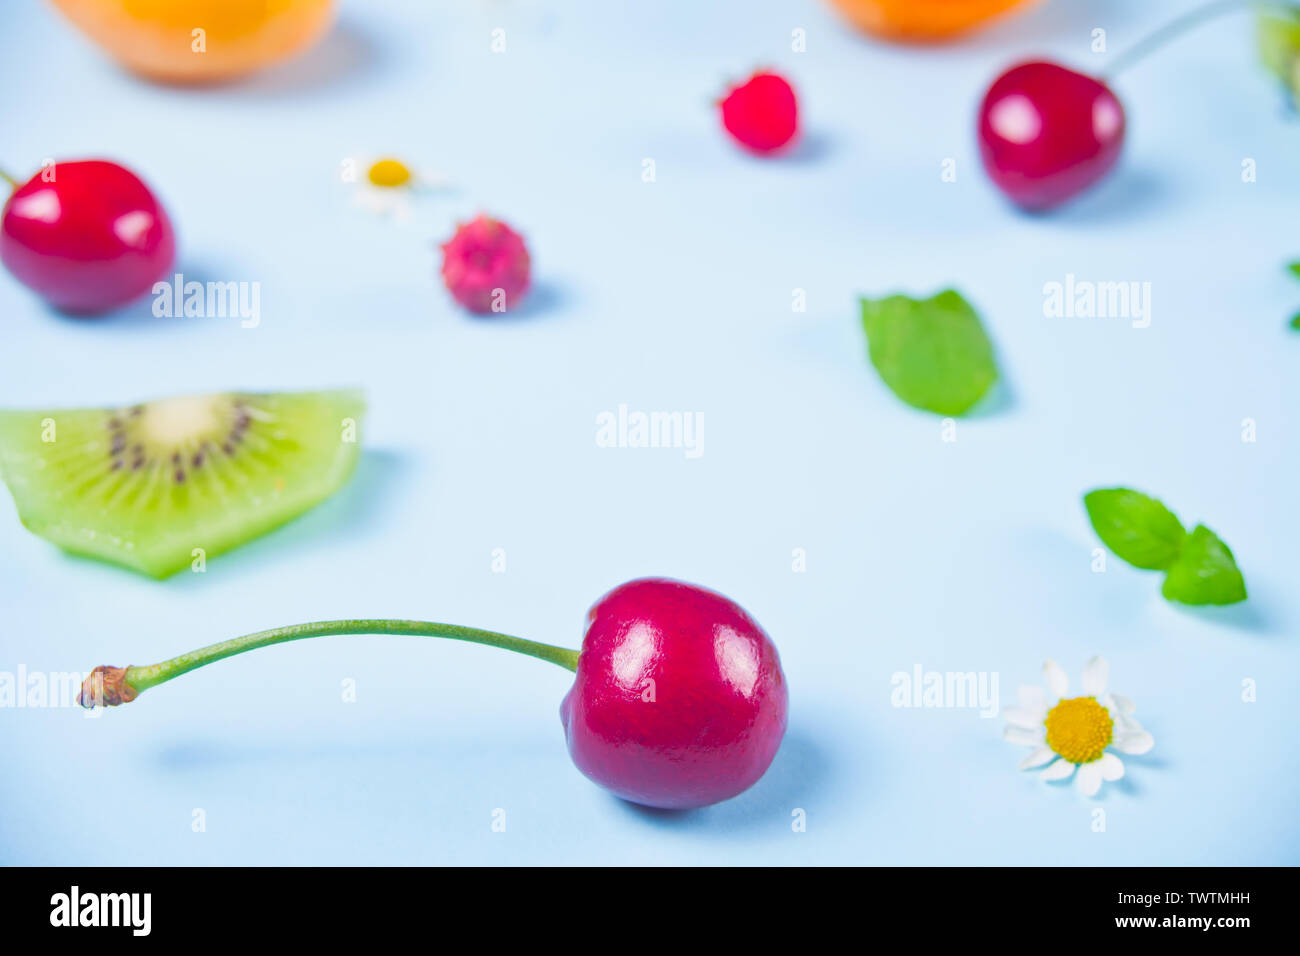 Scattered cherry berries, kiwi, strawberries, mint leaves on the blue background. - Stock Image